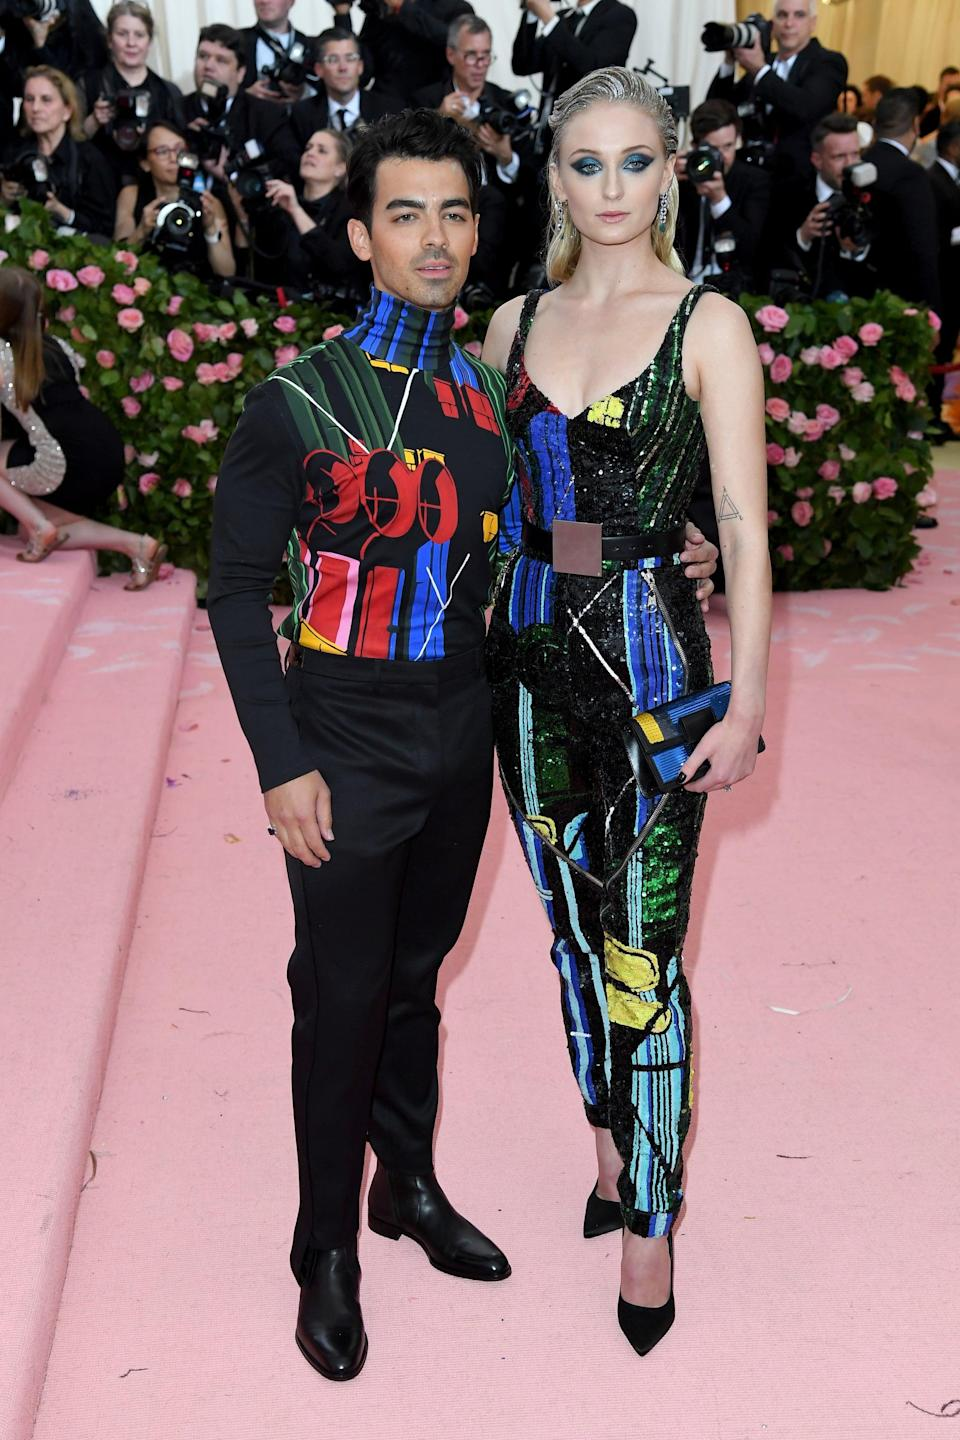 """<p>""""I feel like Louis Vuitton is so great at matching outfits to people's personalities, so it's hard to choose. But, I will say Sophie Turner and <a class=""""link rapid-noclick-resp"""" href=""""https://www.popsugar.co.uk/Joe-Jonas"""" rel=""""nofollow noopener"""" target=""""_blank"""" data-ylk=""""slk:Joe Jonas"""">Joe Jonas</a> could be my favorite, because I'm such a Jonas Brothers fan. So this was the complete package for me.""""</p>"""